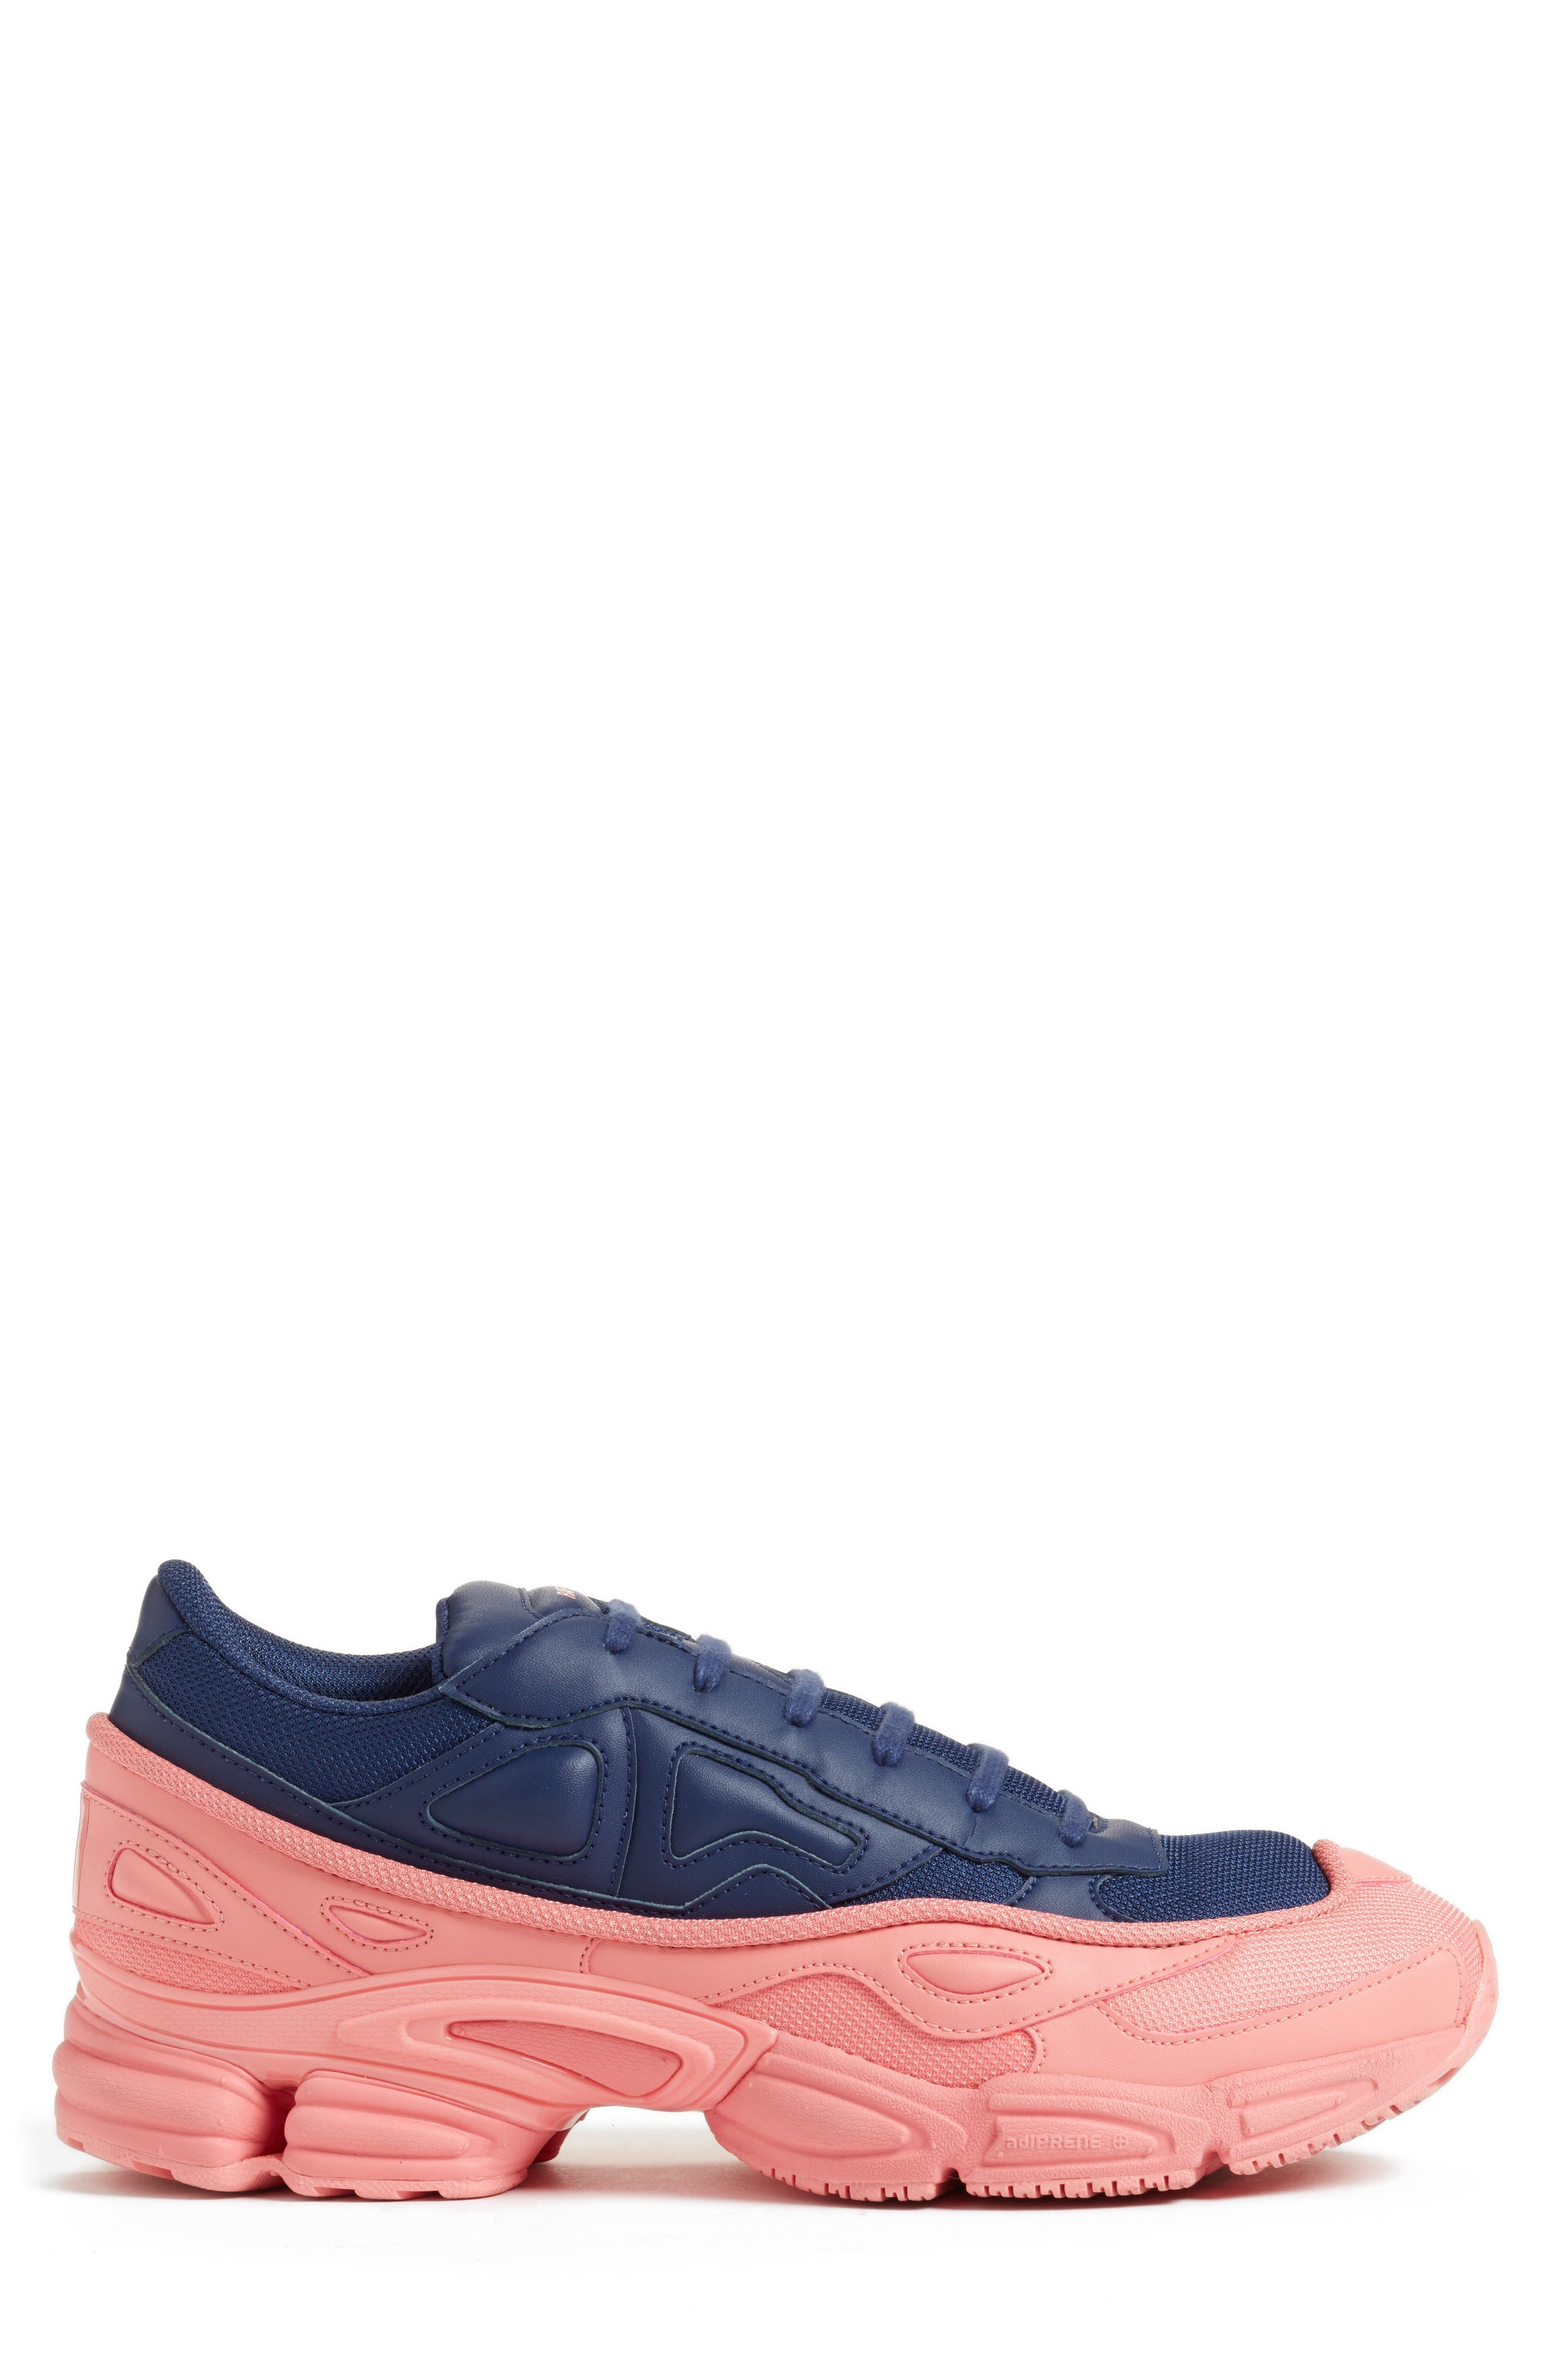 adidas by Raf Simons Ozweego III Sneaker,                             Alternate thumbnail 3, color,                             TACTILE ROSE/ DARK BLUE